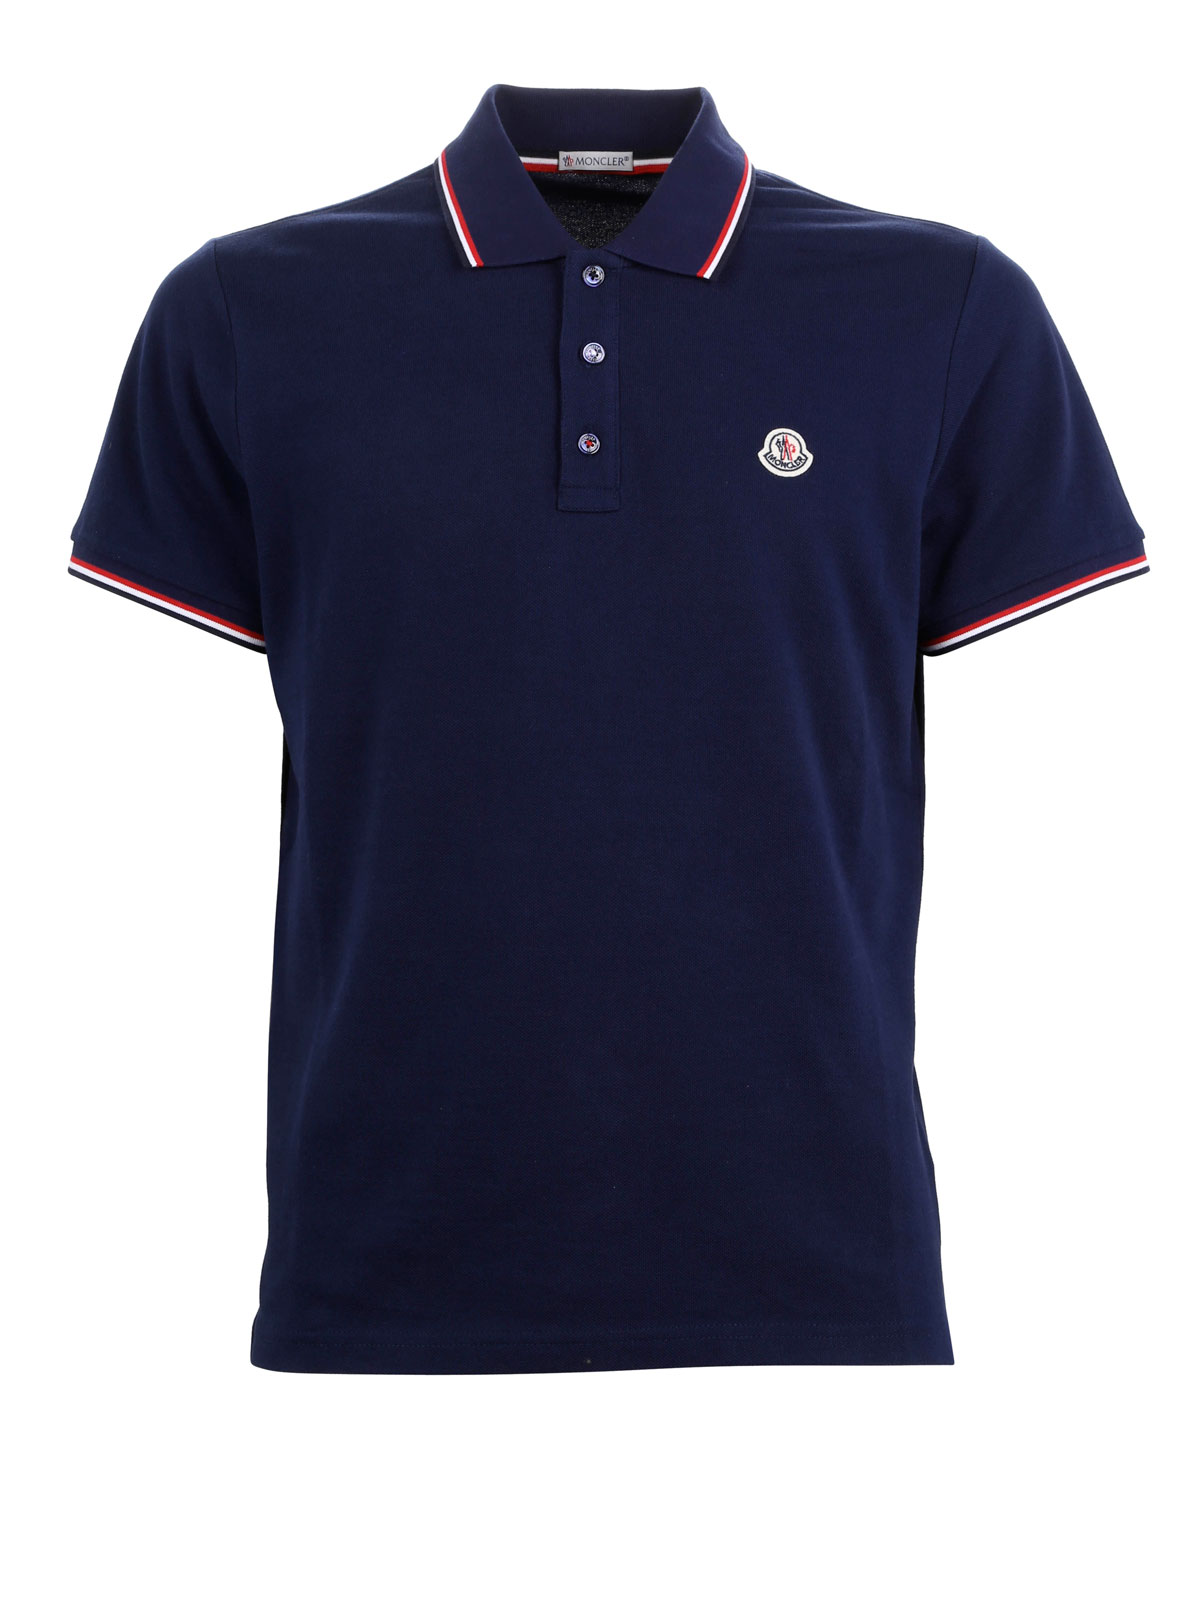 moncler contrasting trim polo shirt polo shirts c1 091 8345600 84556 783. Black Bedroom Furniture Sets. Home Design Ideas